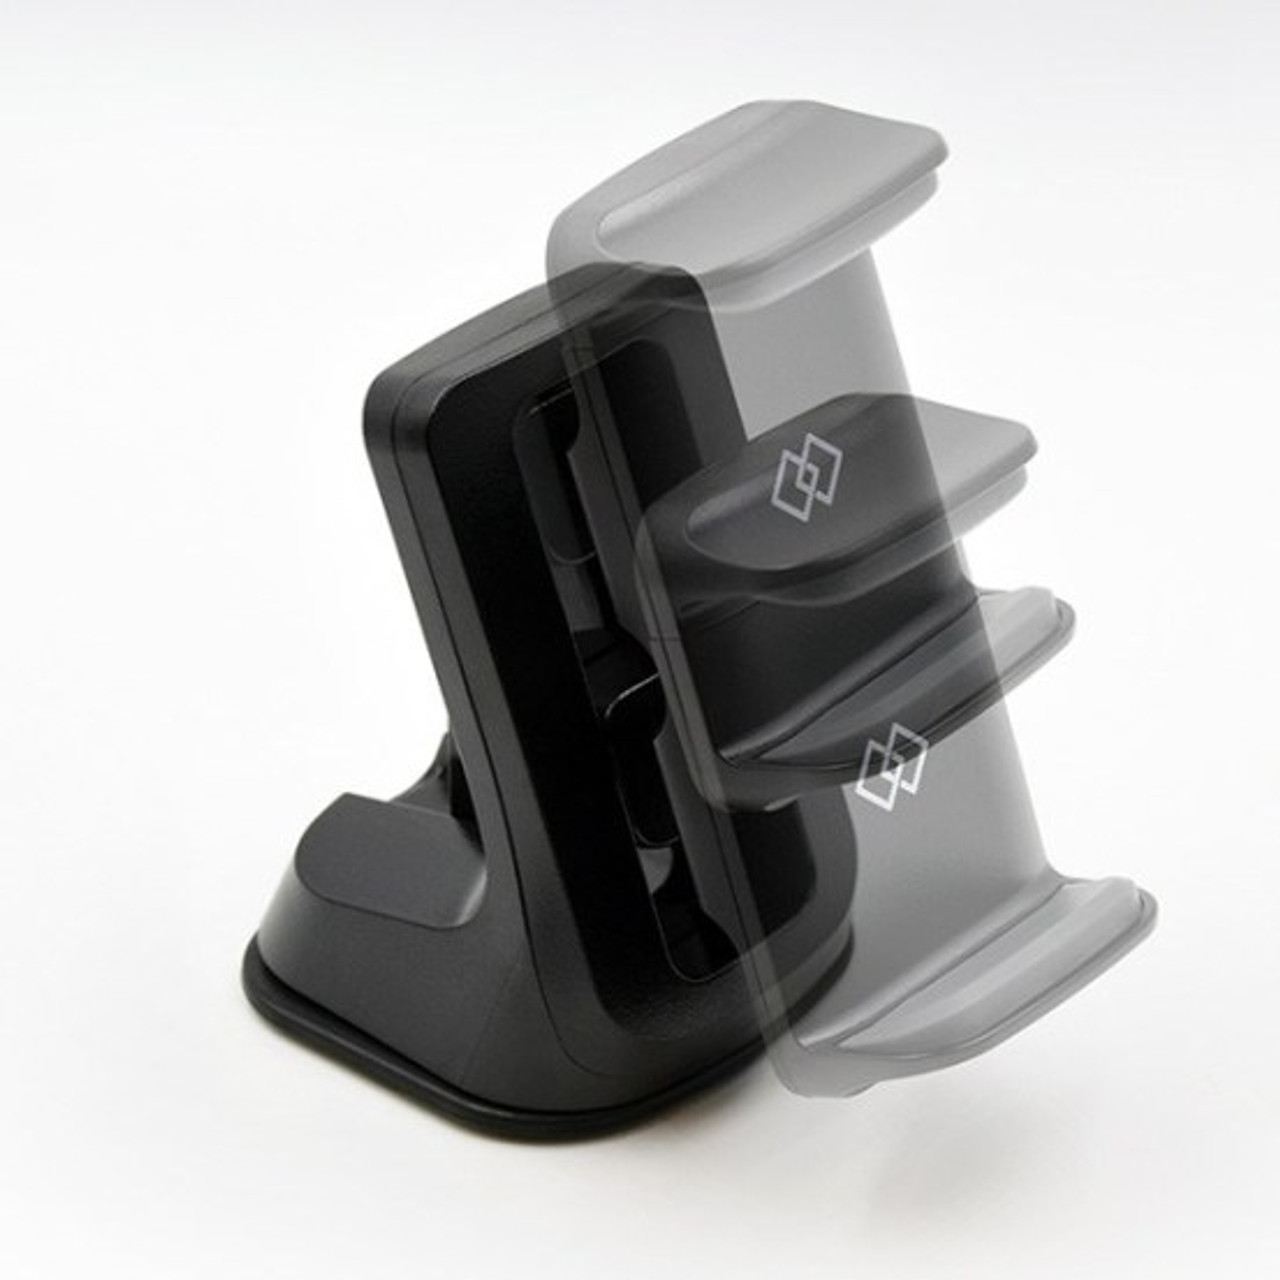 Windshield Mount For You Phone/Screen